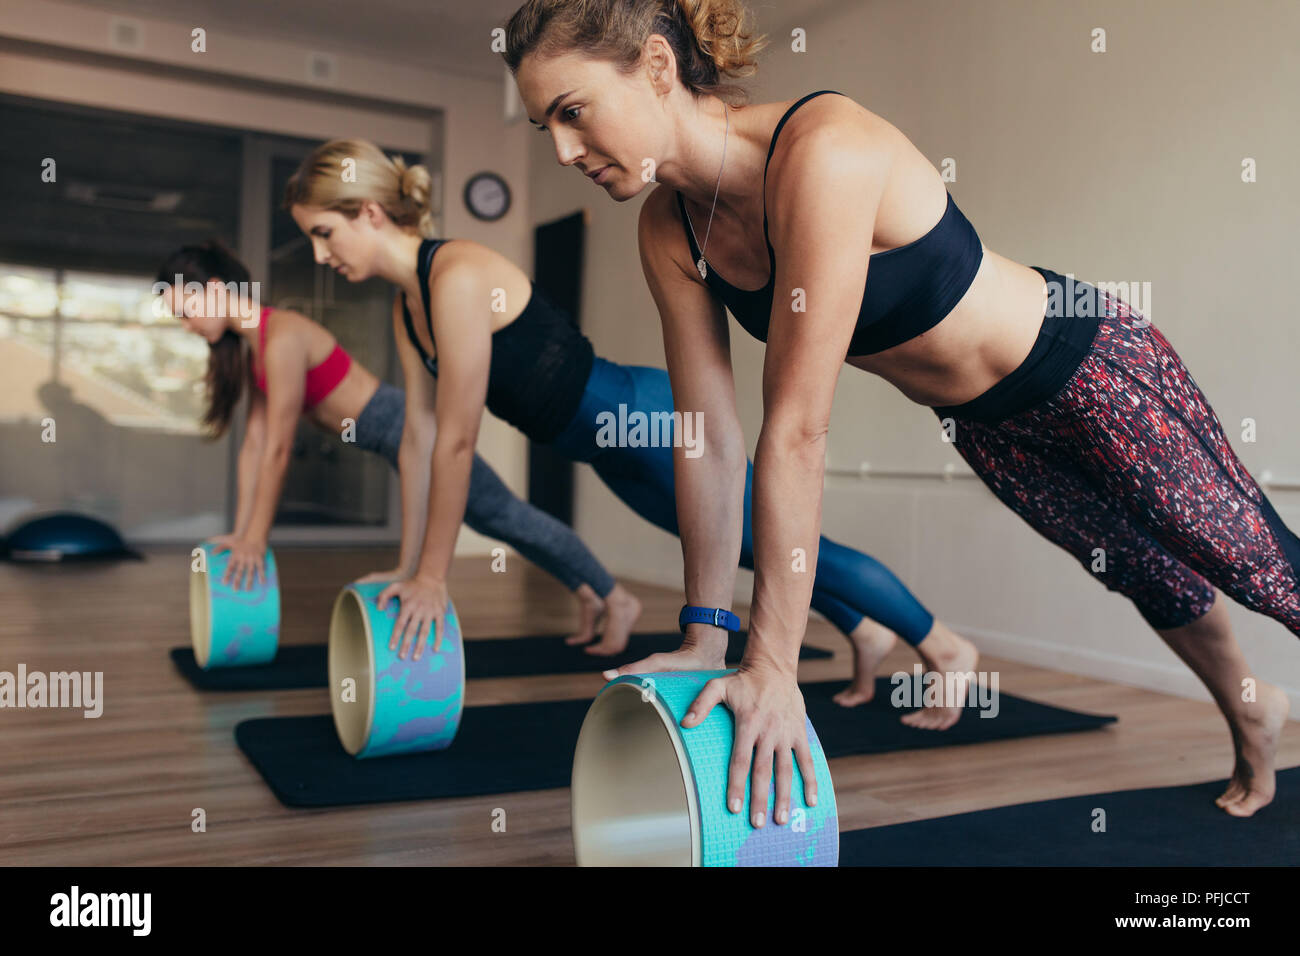 Women in push up position resting their hands on yoga wheel doing pilates workout. Three women doing pilates workout at the gym. - Stock Image